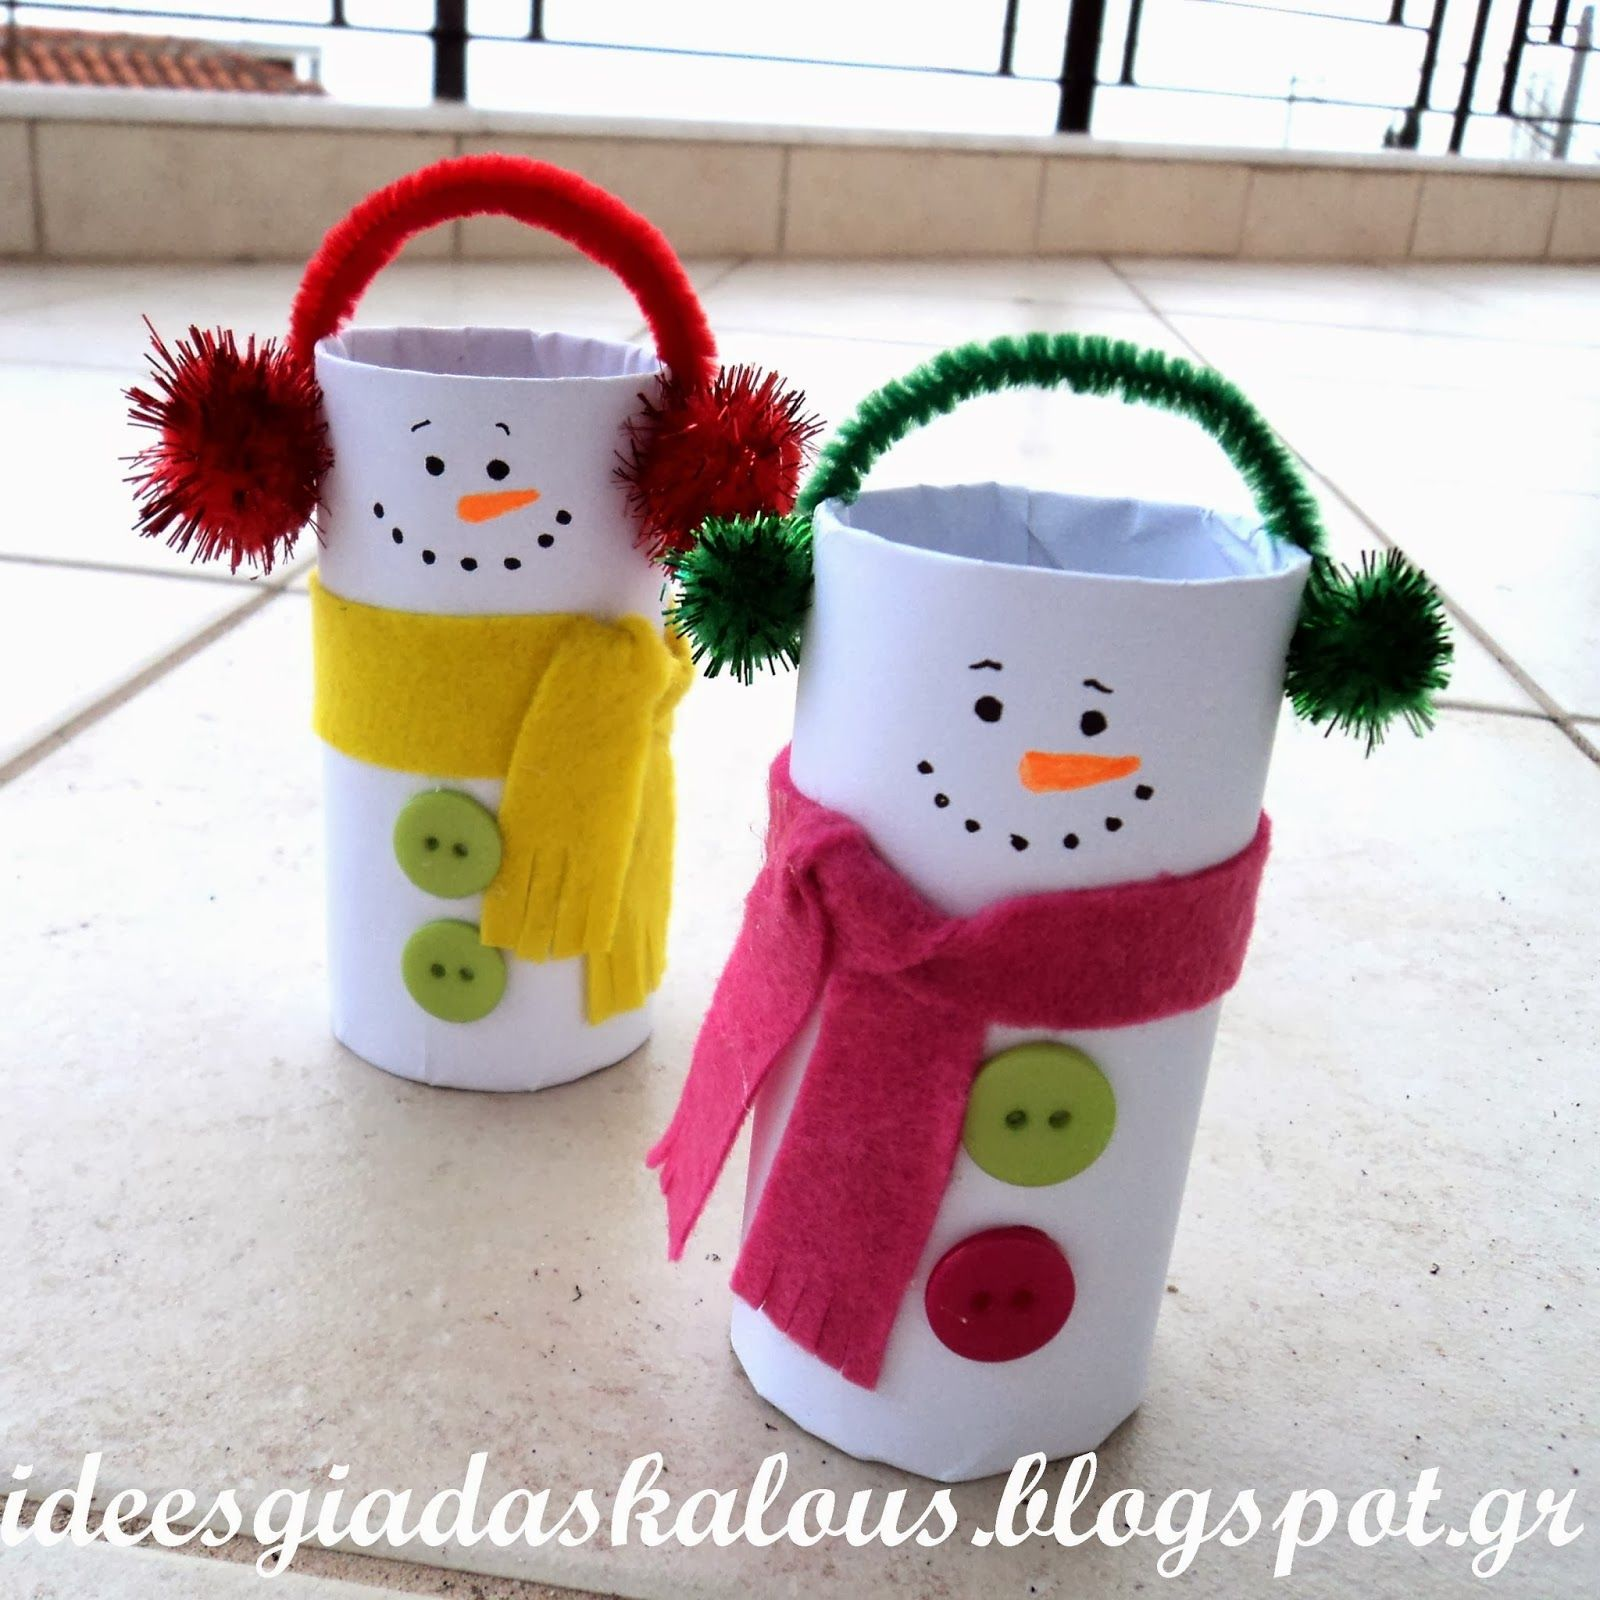 toilet paper roll snowman toilet paper rolls egg cartons bottoms for hats orange. Black Bedroom Furniture Sets. Home Design Ideas